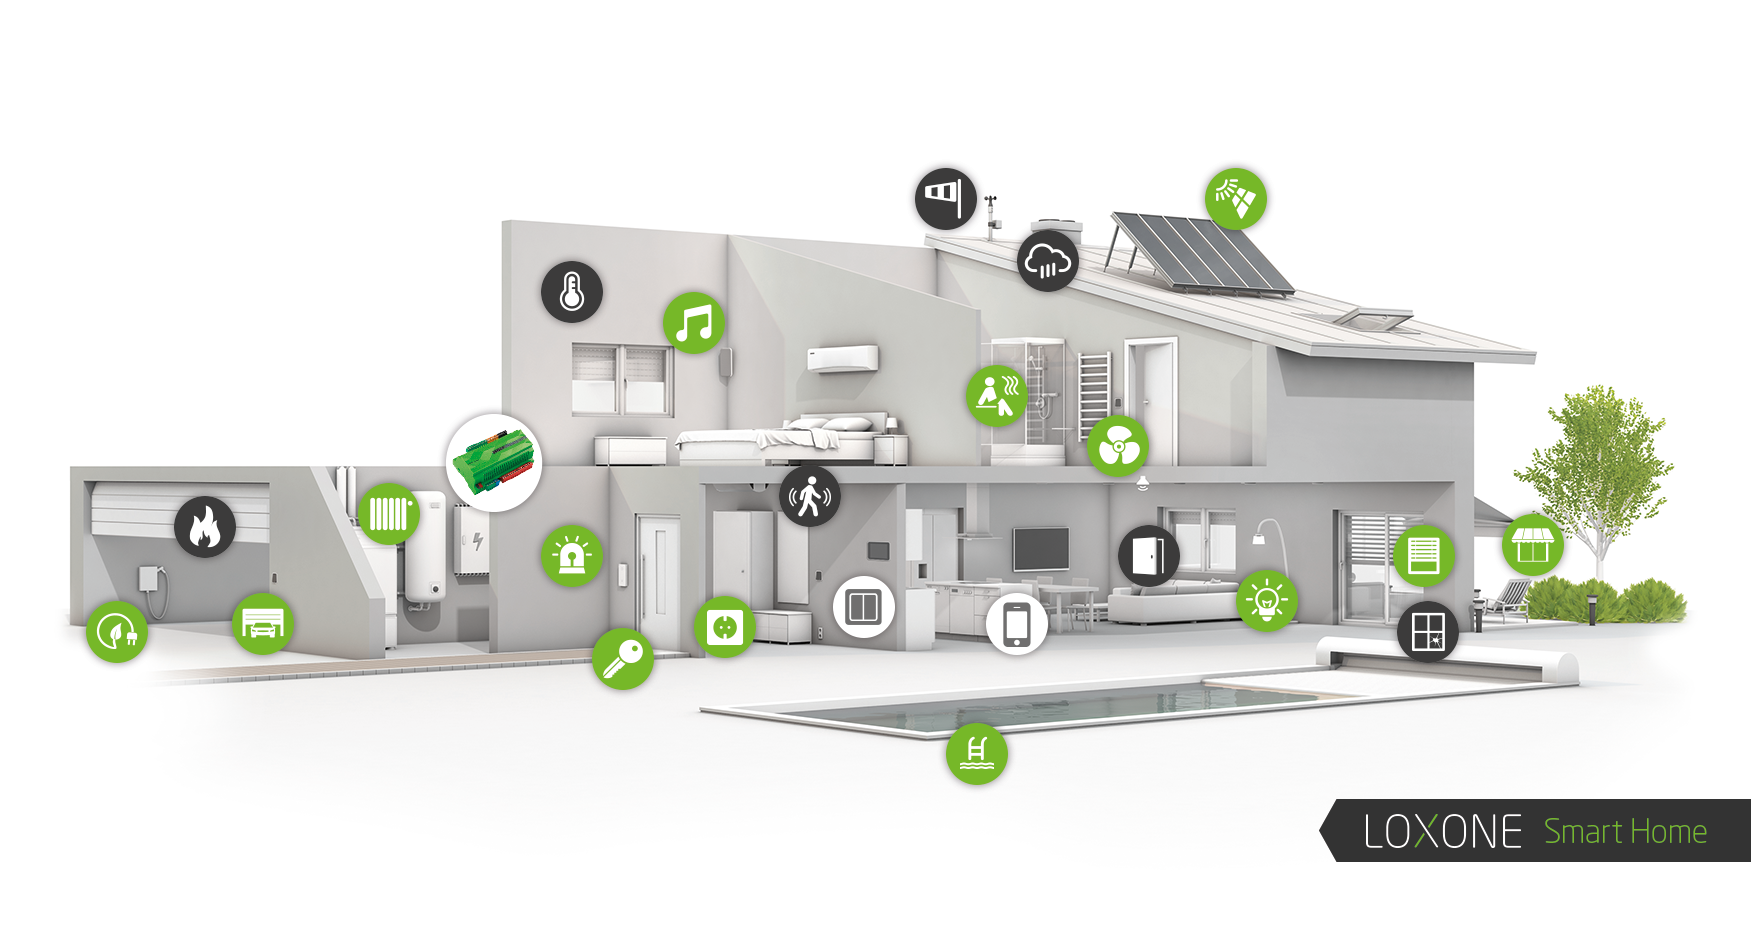 Real Loxone Smart Home - 360° Rund-um-Lösung